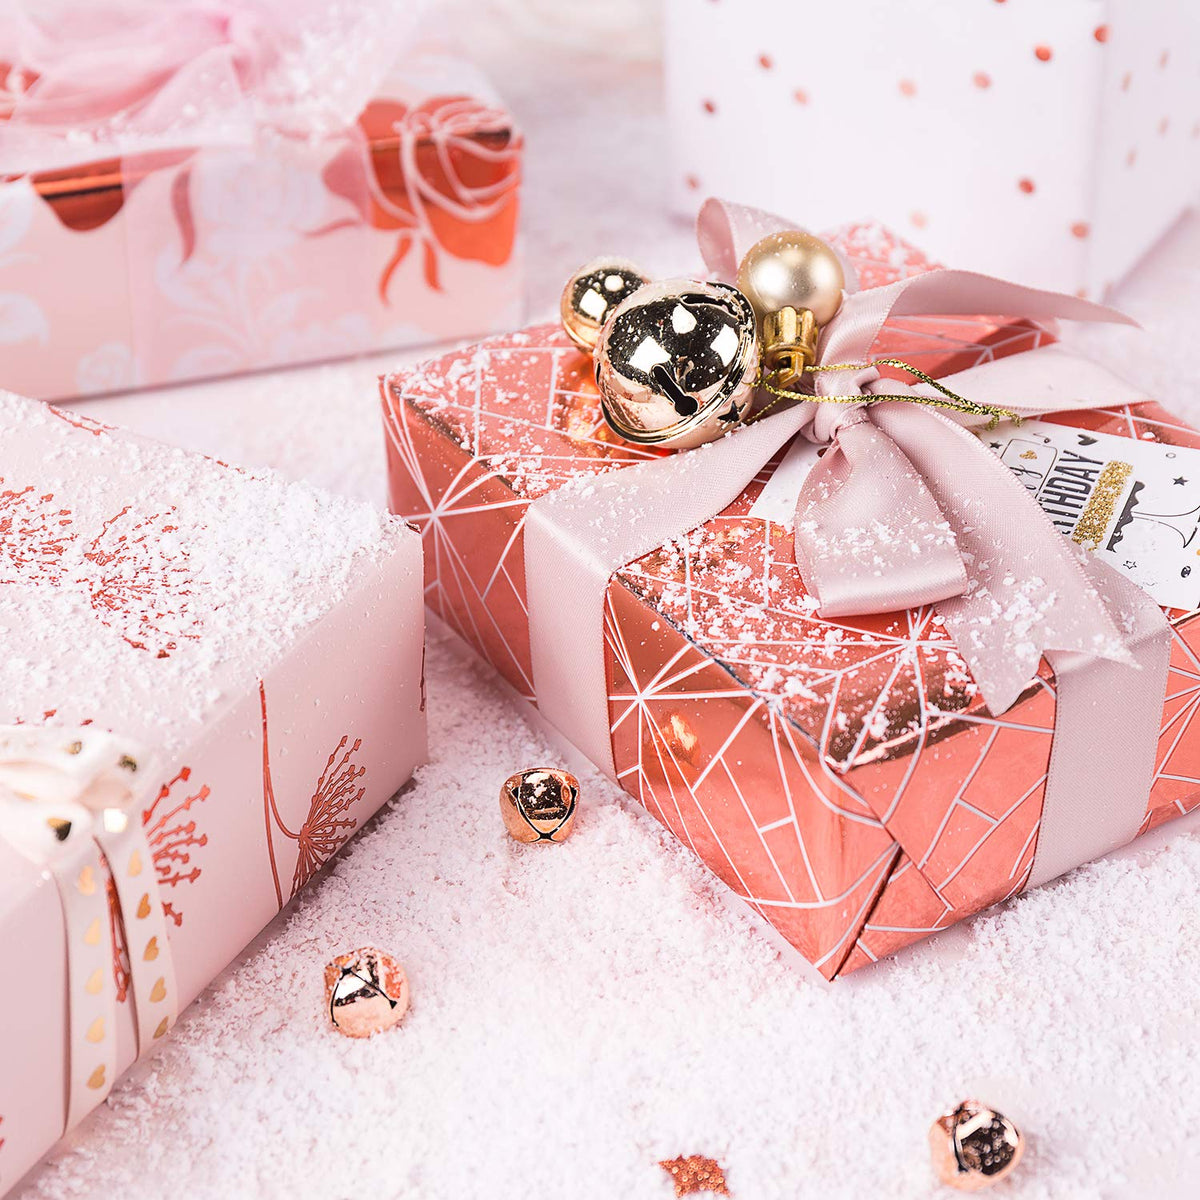 WRAPAHOLIC-Rose-Gold-Foil-Gift-Wrapping-Paper-Roll-4-Rolls-Set-6